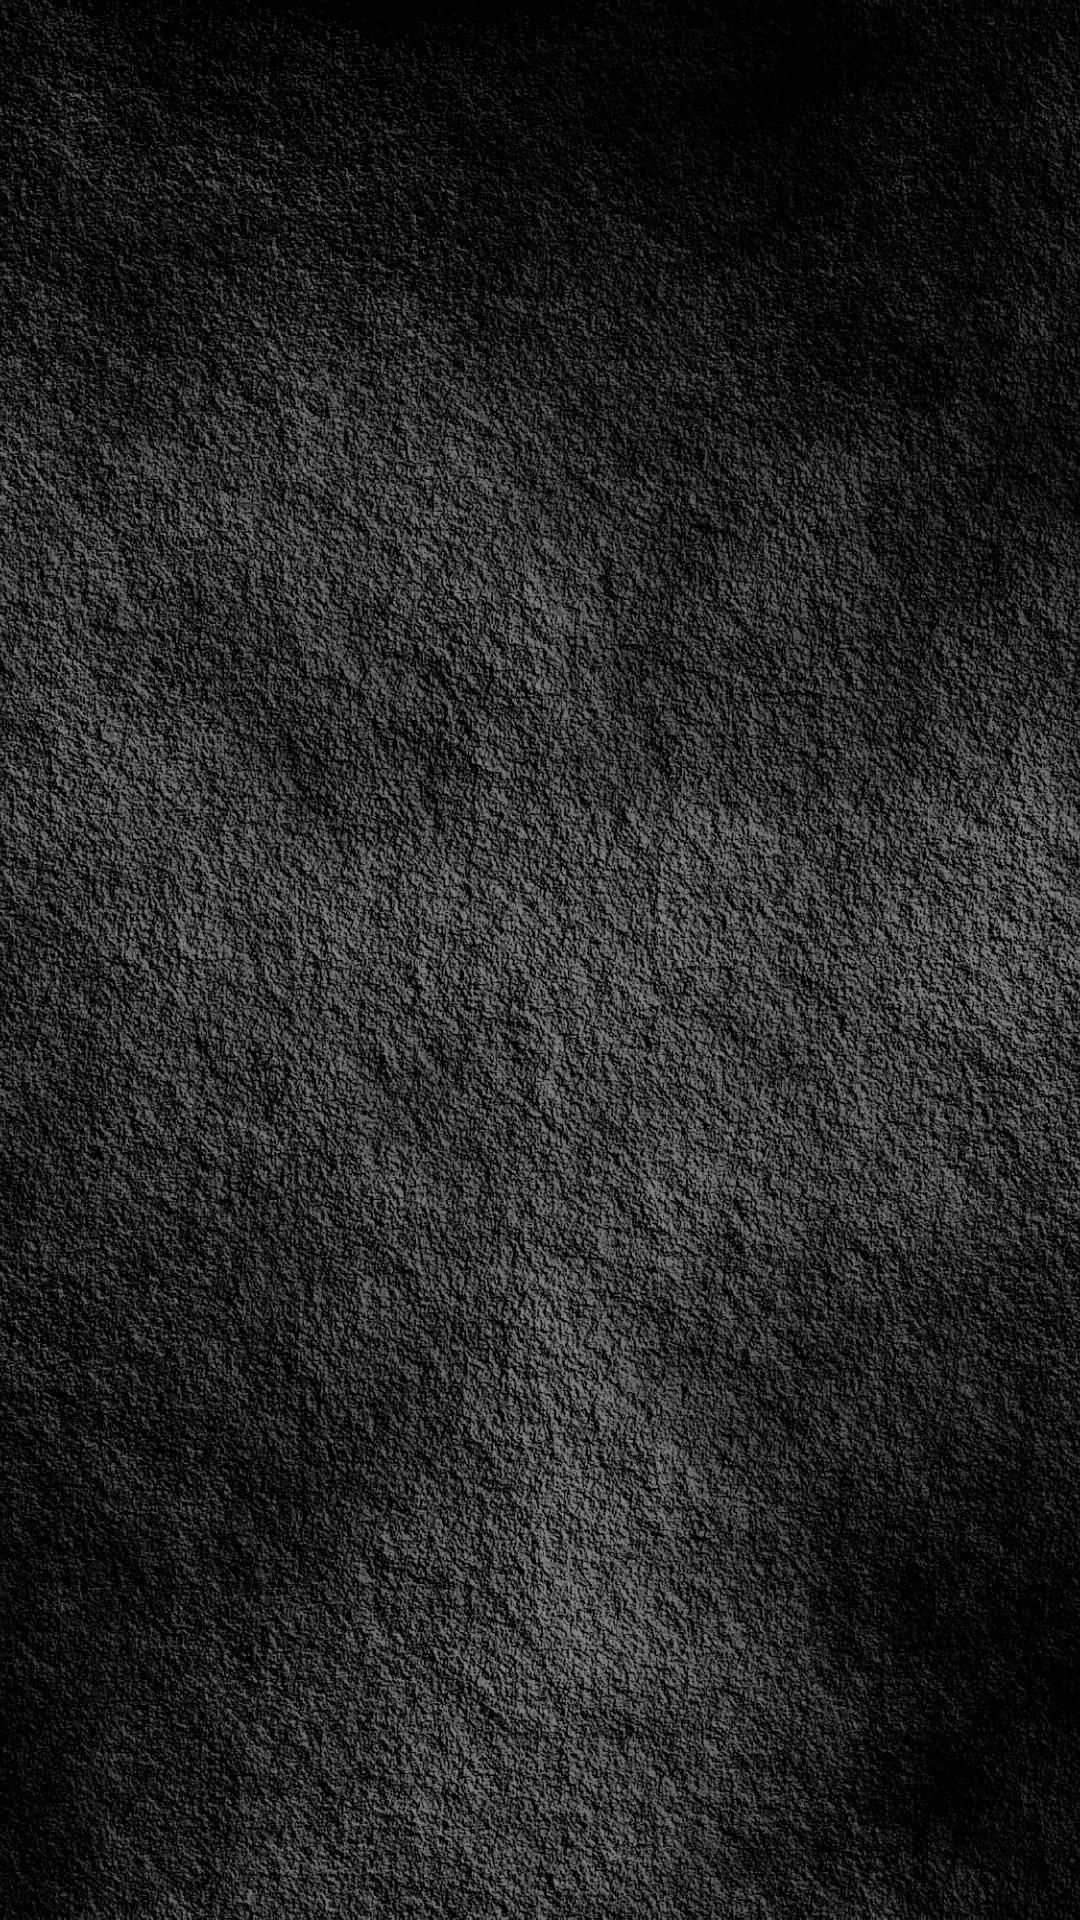 Black Rock Texture Mobile Background Tekstury